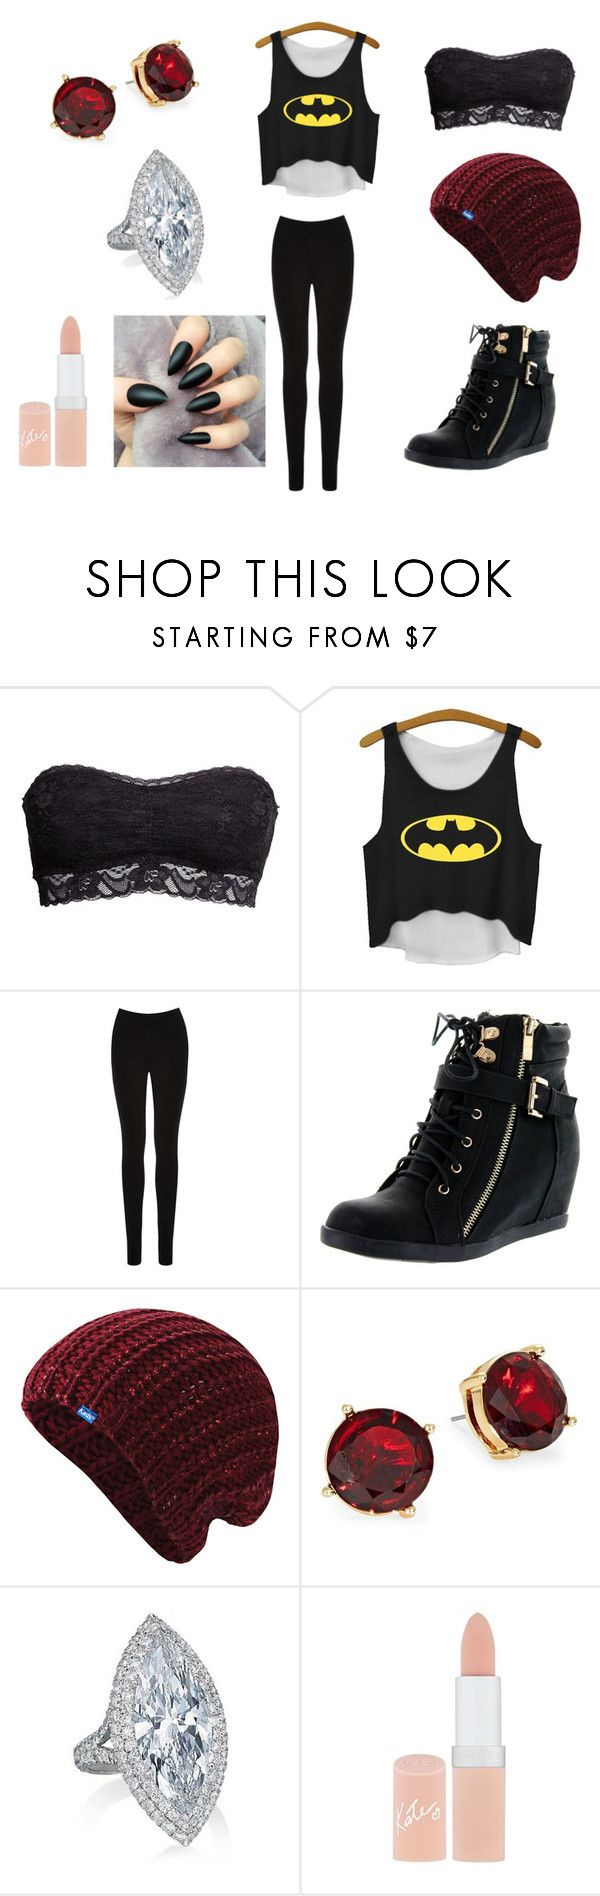 """""""Outfit #98"""" by dragonwolfhorse ❤ liked on Polyvore featuring H&M, Oasis, Top Moda, Keds, Lauren Ralph Lauren and Rimmel"""